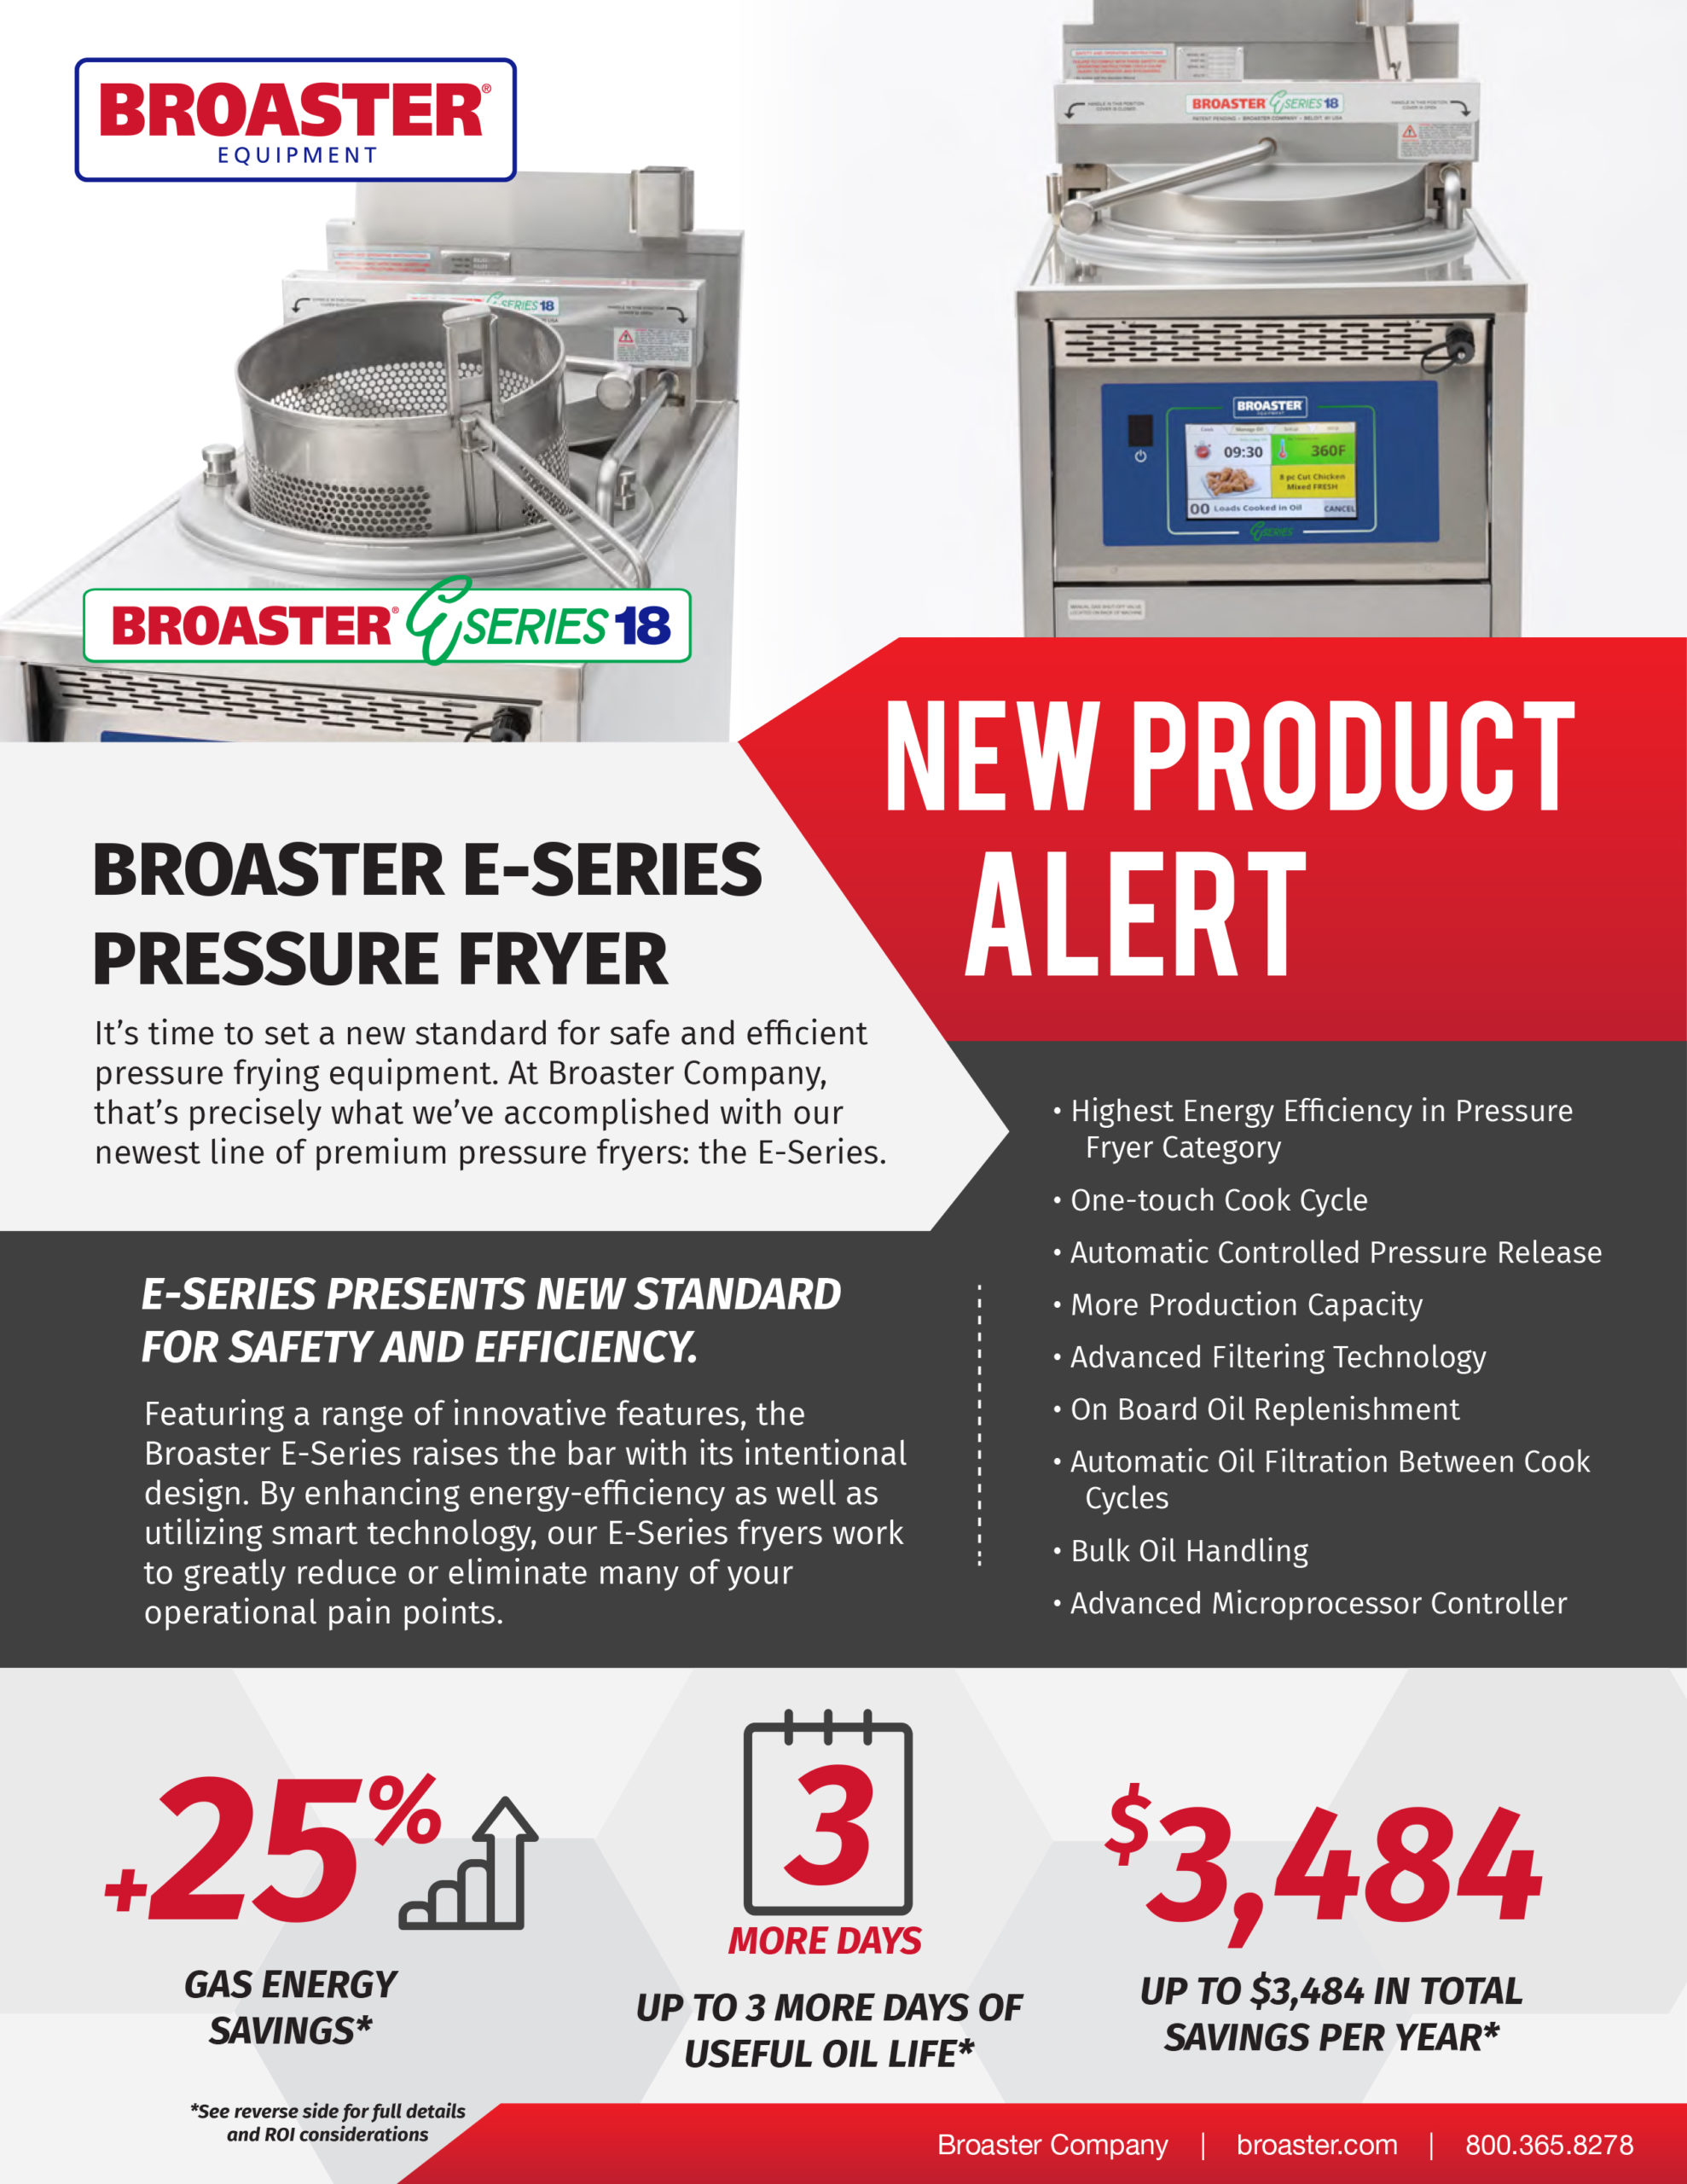 ROI for E-series 18 from Broaster Company